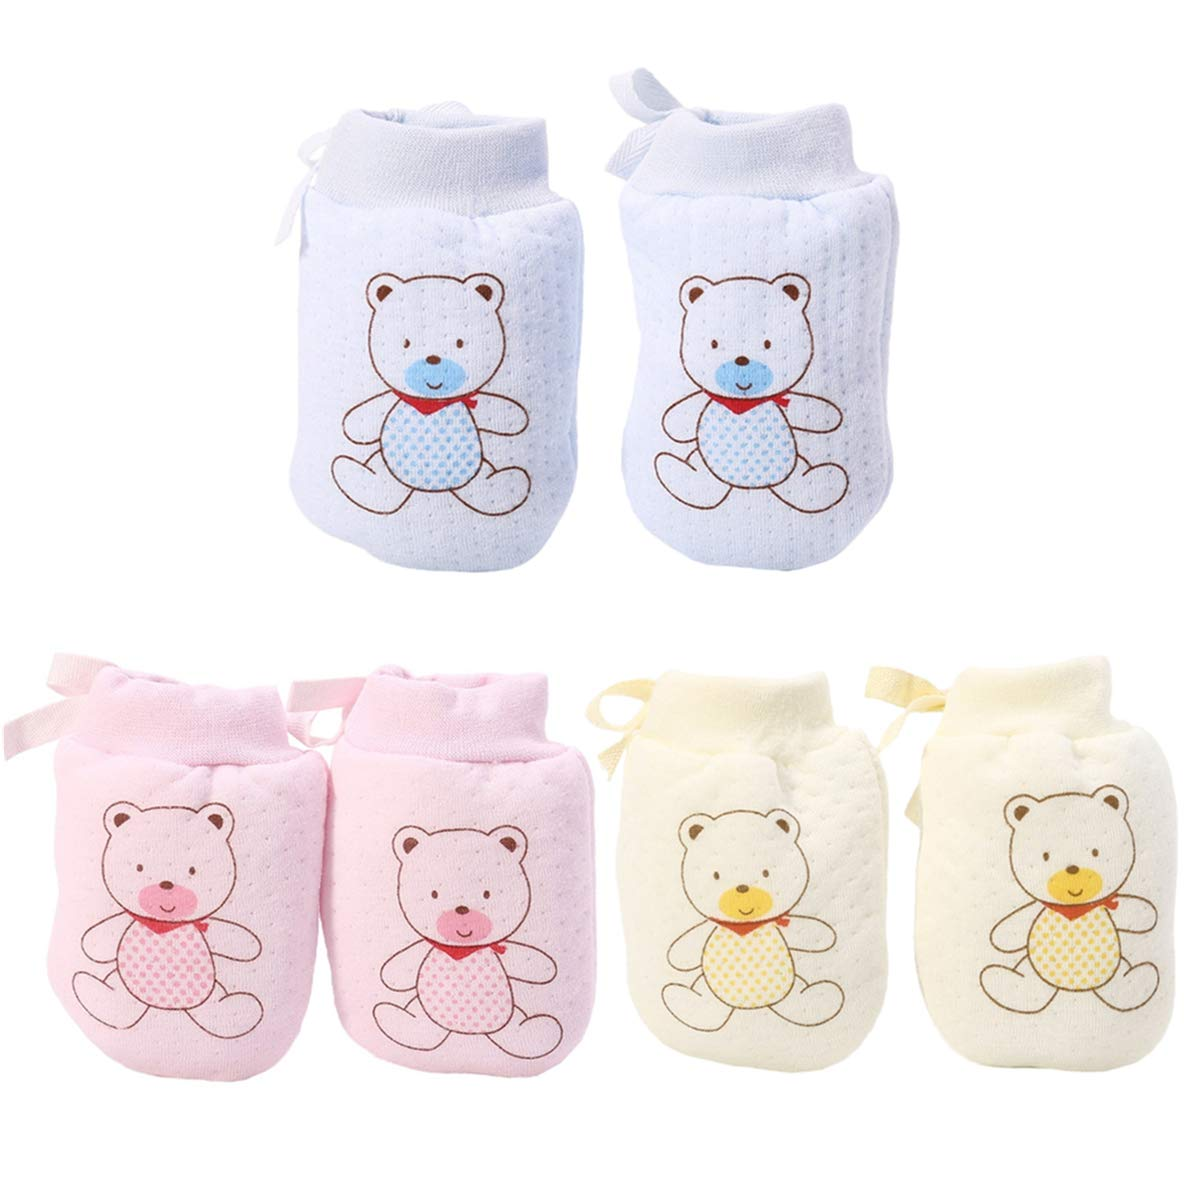 LOVARTS BEAUTY 3 Pair Baby Anti Scratch Gloves with Adjustable Drawstring Autumn Winter Newborn Boys Girls Warm Cotton Mittens for 0-6 Months